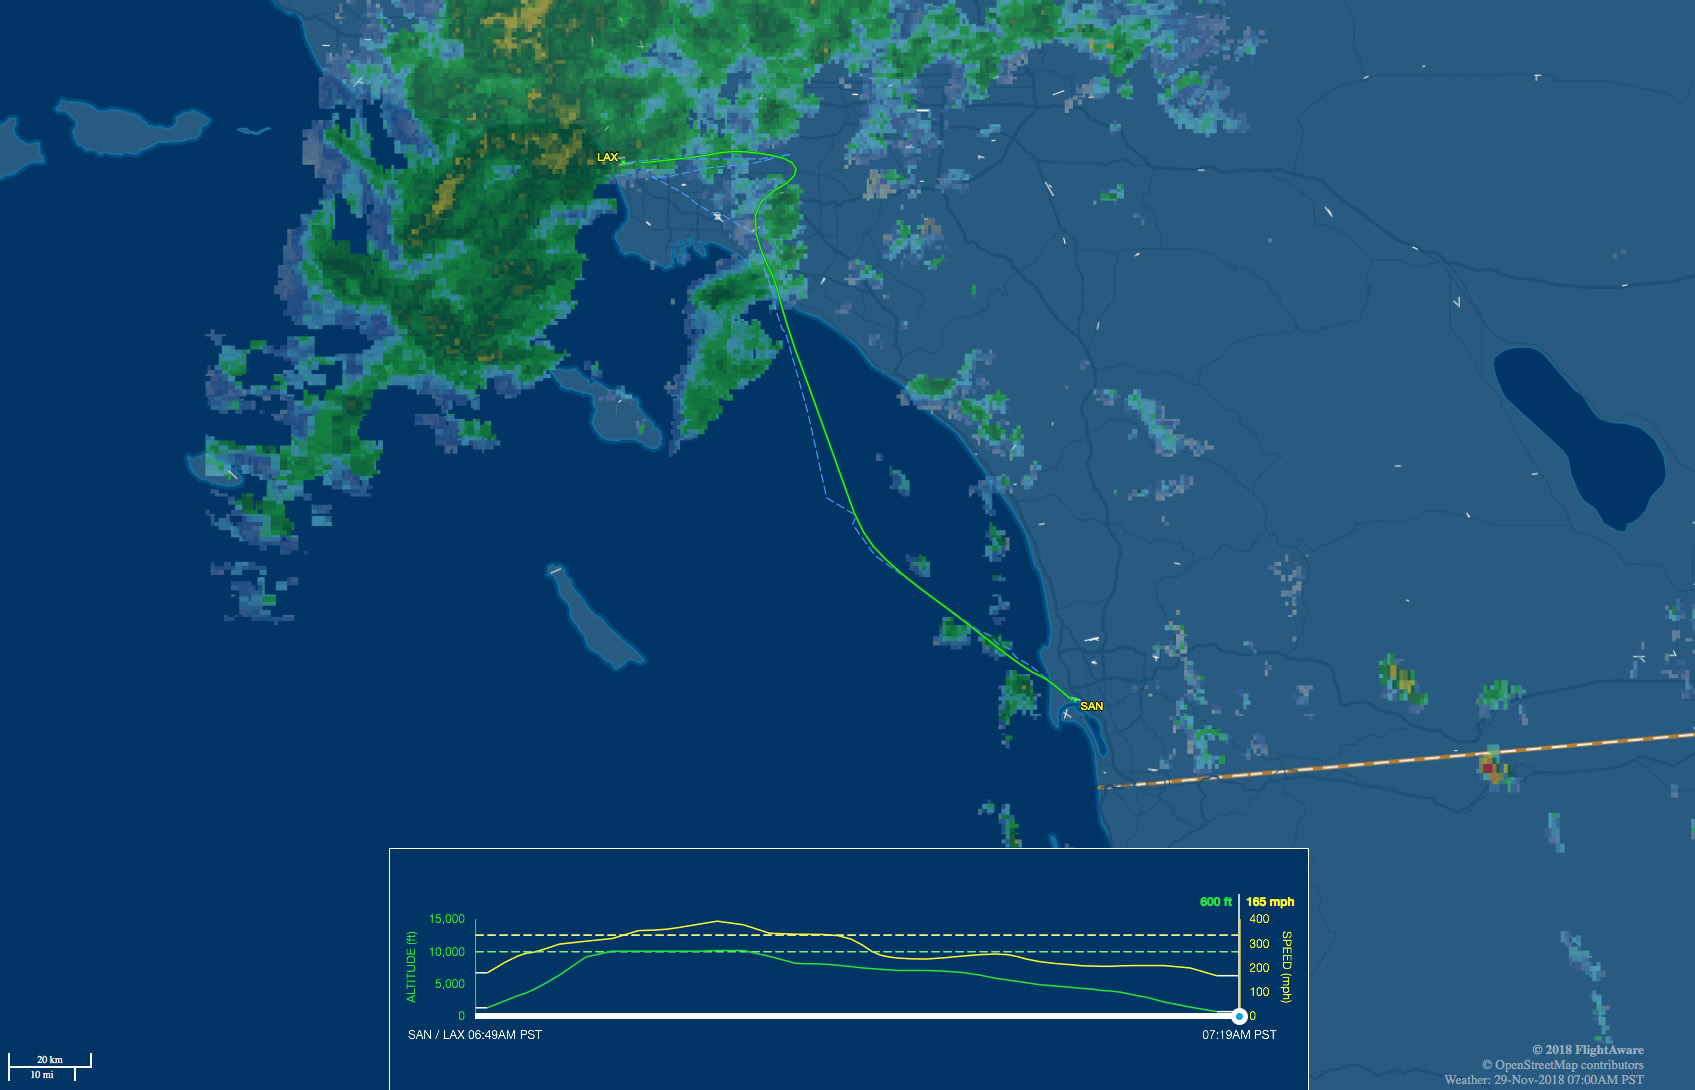 SAN to LAX flight map with rain and wind